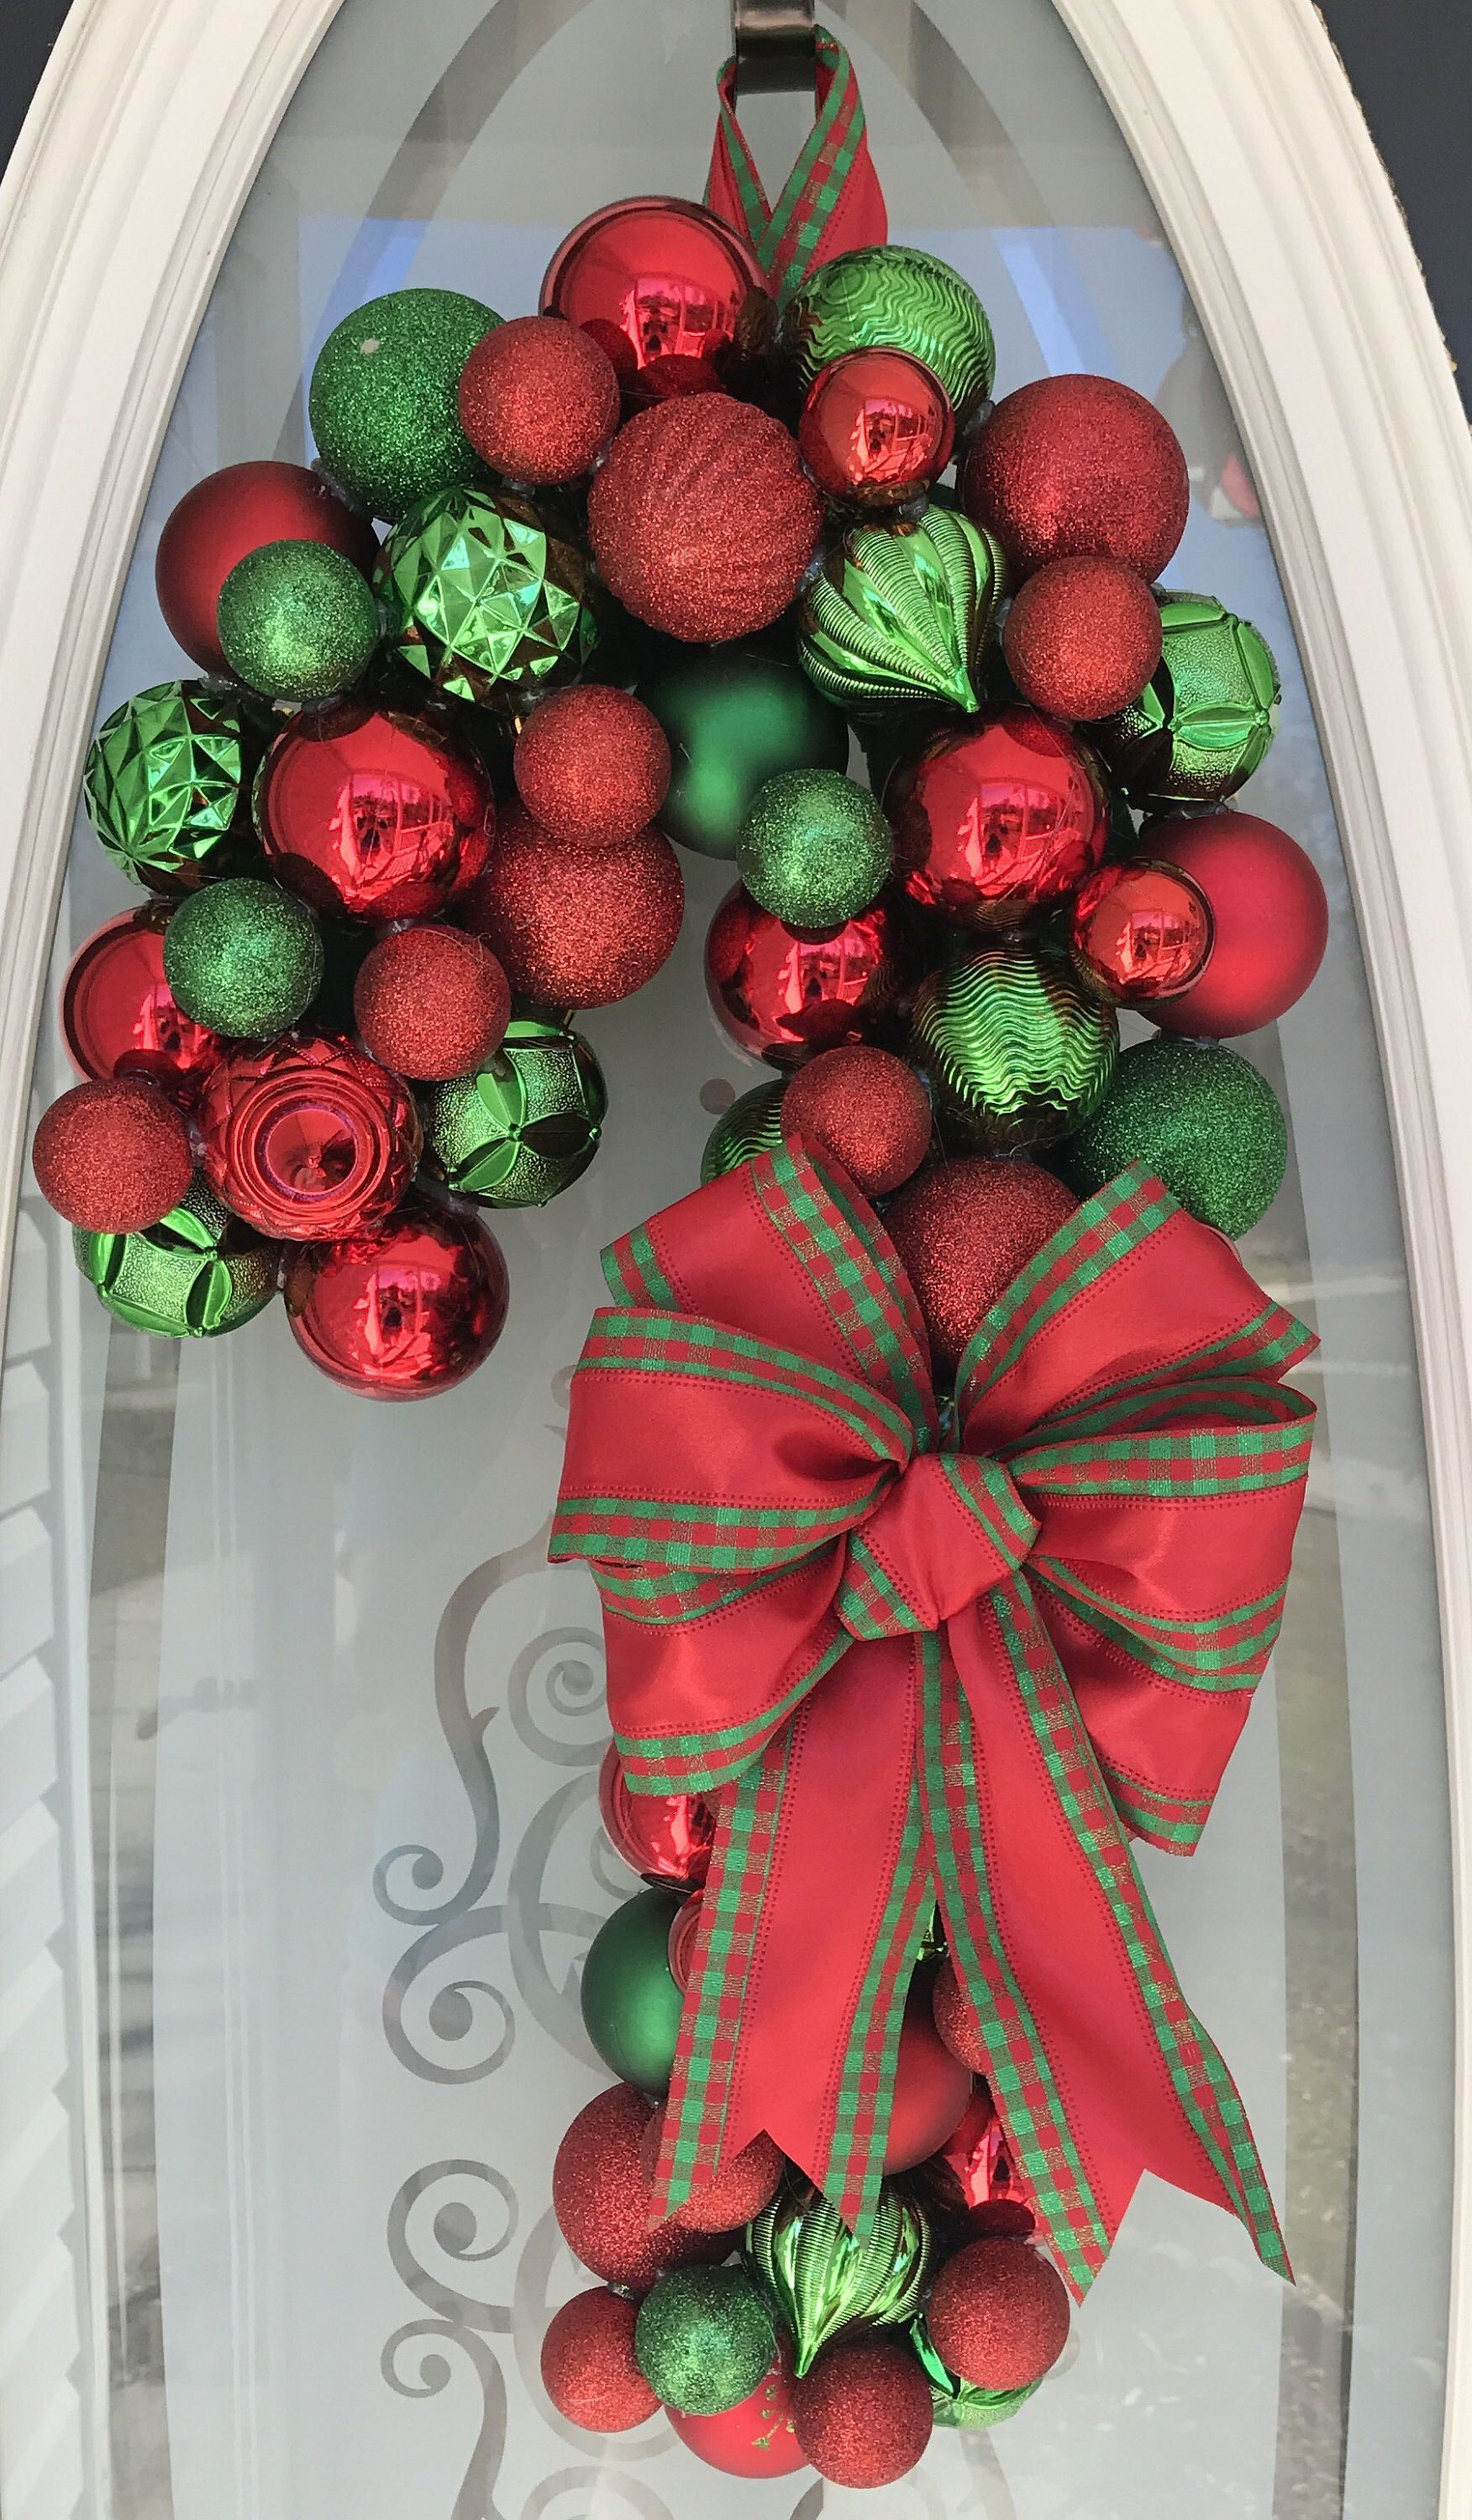 Shatterproof Ornament Candy Cane Wreath - Christmas Ornament Wreath - ready to ship - Ornament Wreath - Ball Wreath #candycanewreath This wreath is made using shatterproof ornaments. I used felt, a wire wreath form, hot glue, shatterproof (plastic) ornaments, and ribbon. It is quite durable and would make a beautiful addition to your Christmas decor! Ornament Wreaths have become one of my favorite things to make. They are clean and simple, yet elegant and unique. Each ornament is placed strategi #candycanewreath